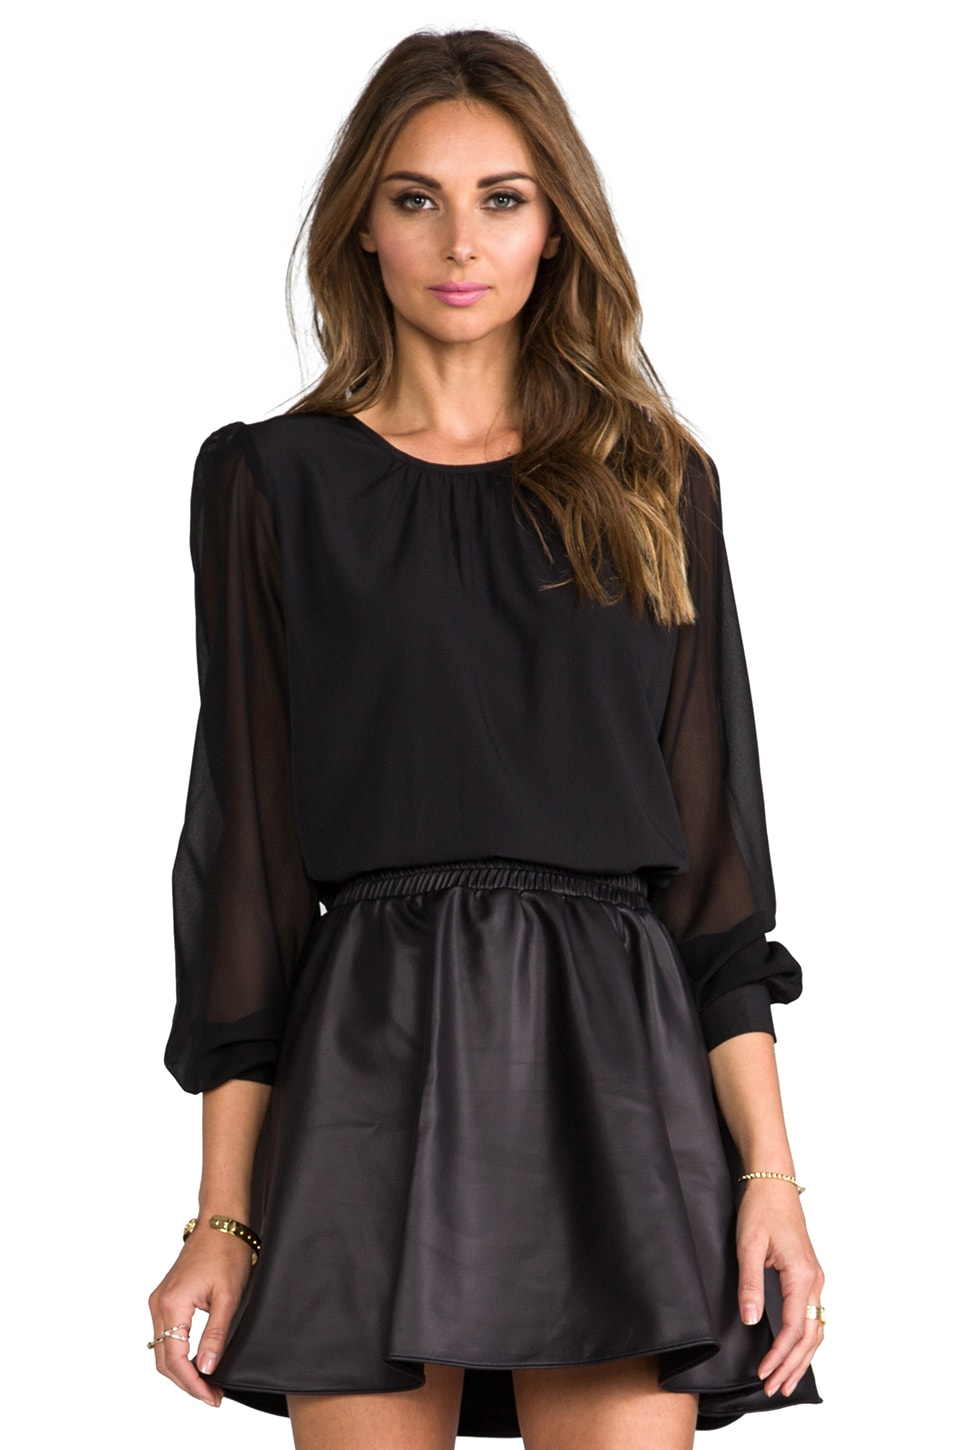 Lovers + Friends Mayfair Top in Black